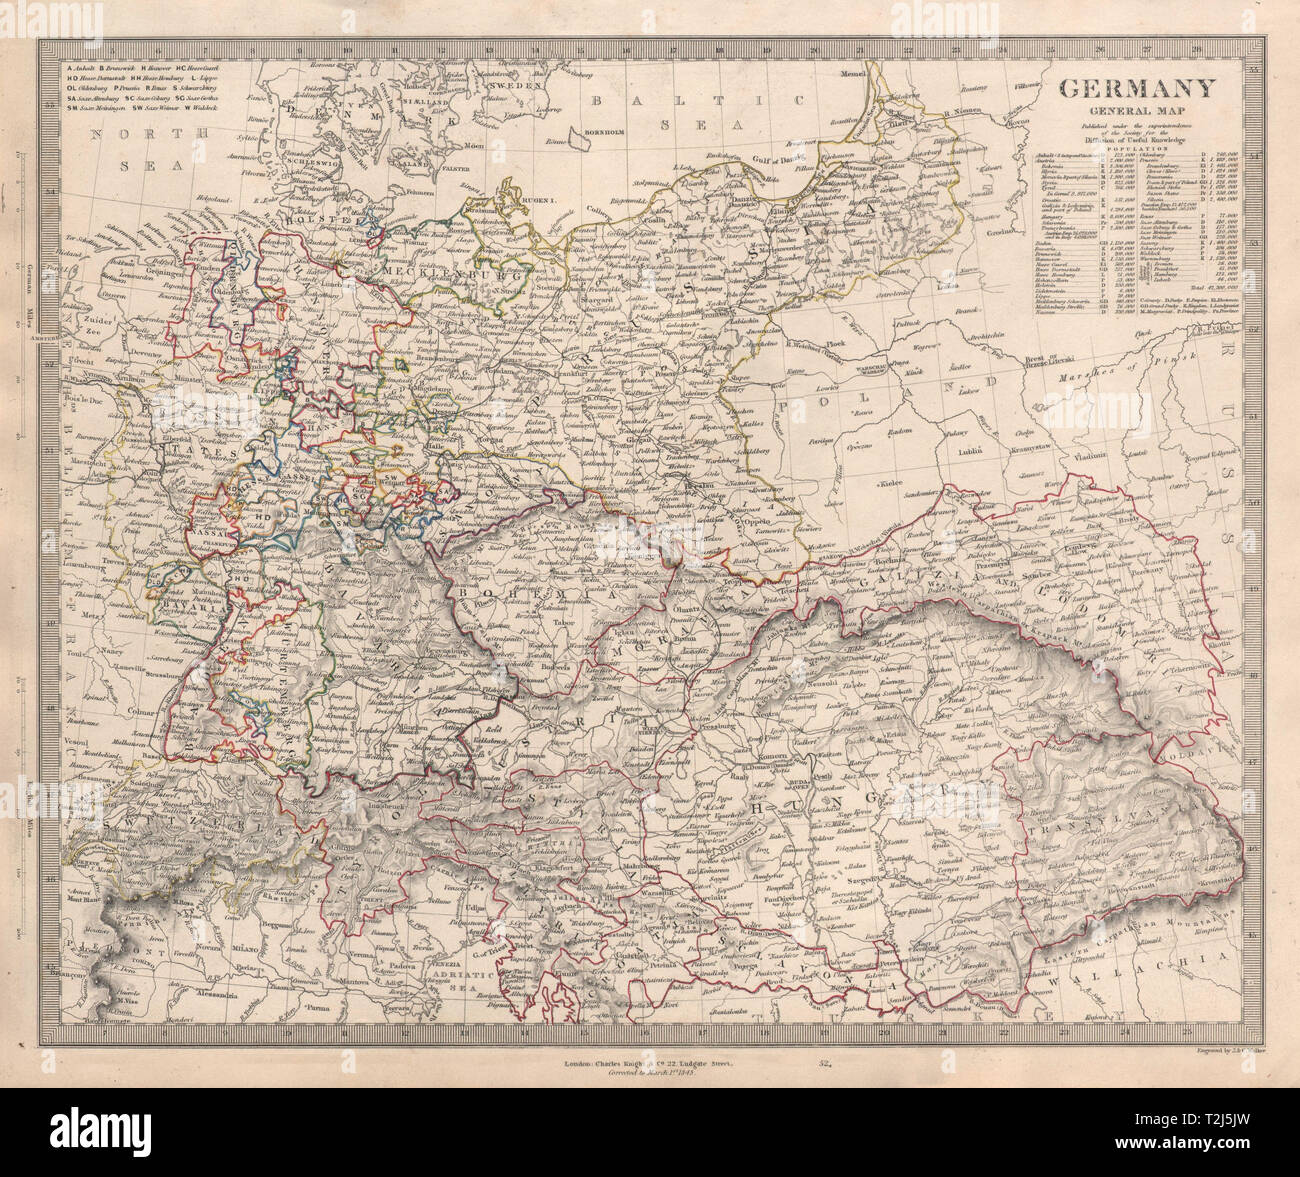 Map Of Germany And Hungary.Germany General Map Austria Hungary Switzerland Population Table